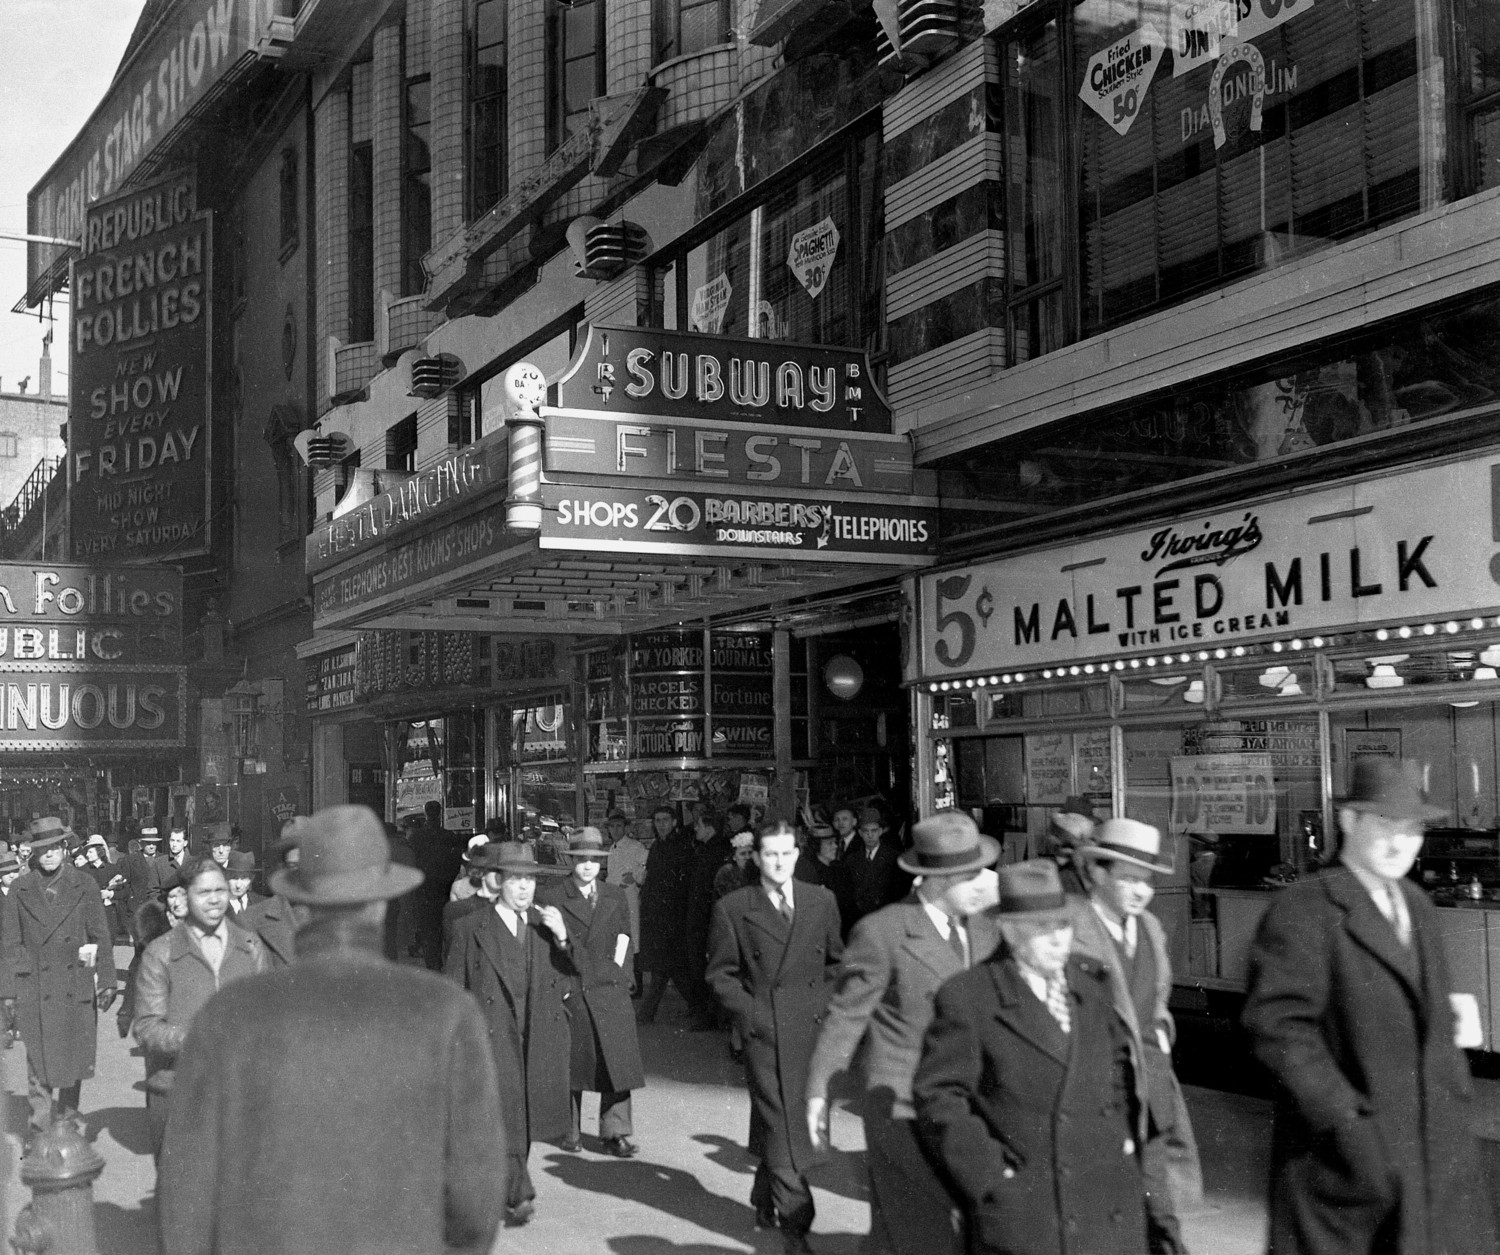 This view shows the 42nd Street subway entrance and store fronts in New York City on April 2, 1940.